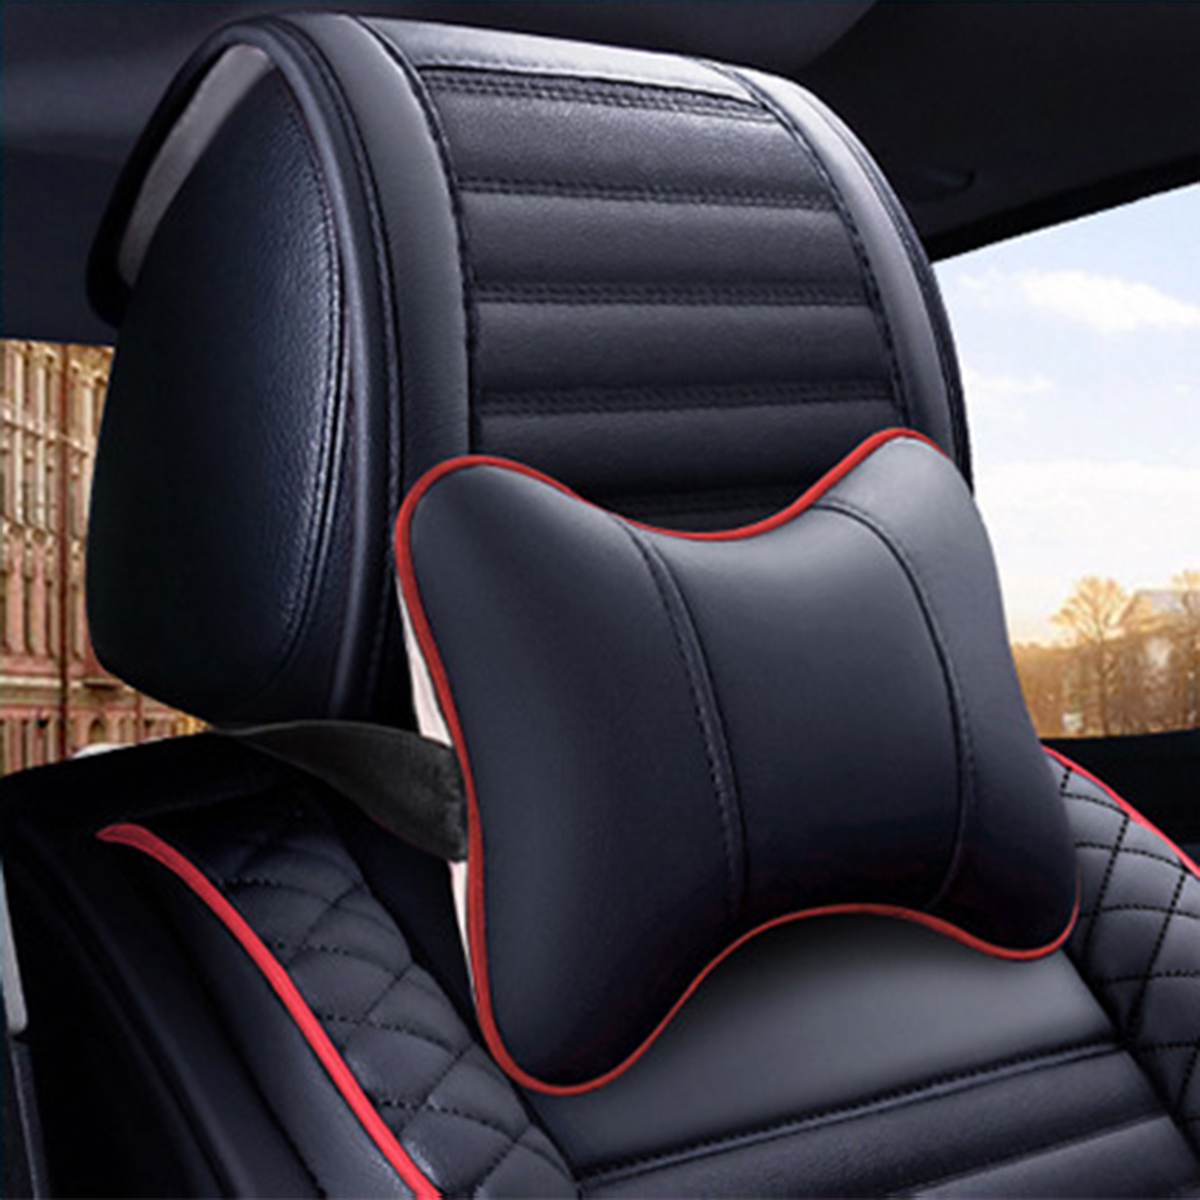 Leather Car Front Seat Cover Cushion Protector with Pillow Universal for Five Seats Car